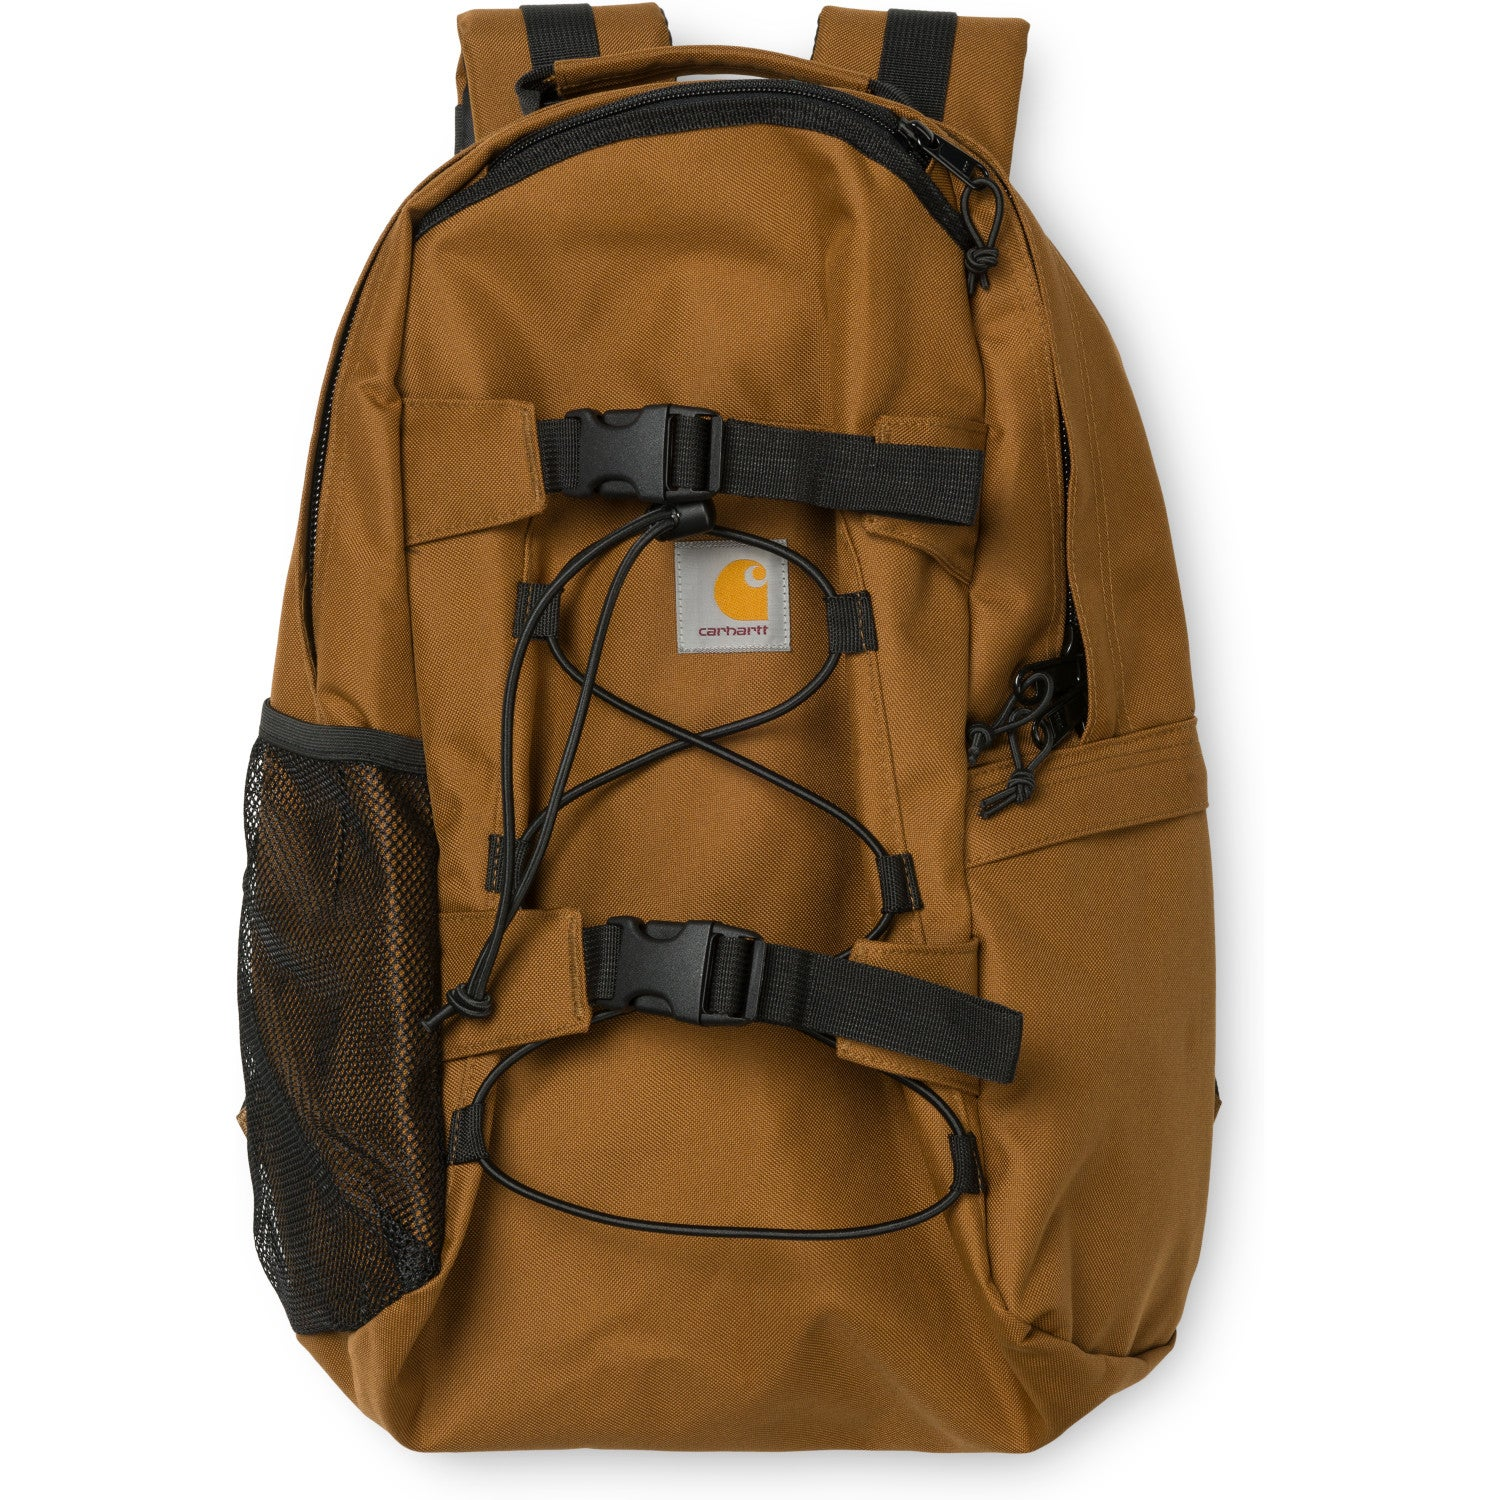 Carhartt Kickflip Backpack available from Surfdome